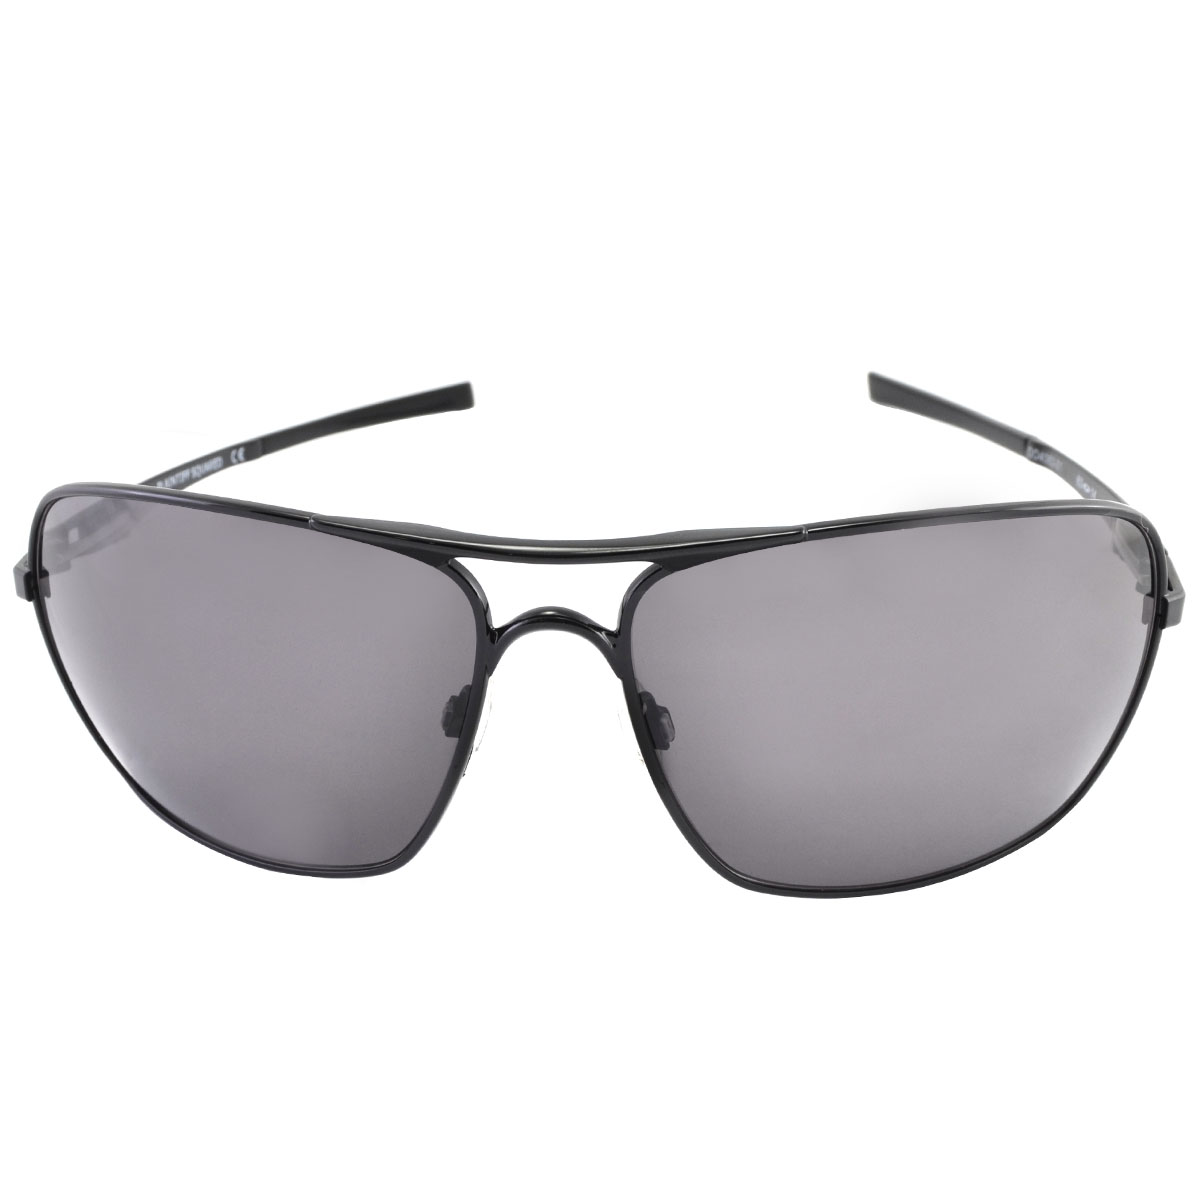 Óculos Oakley Plaintiff Squared Polished Black Lente Warm Grey ref OO4063-01 f2a5d7ba28